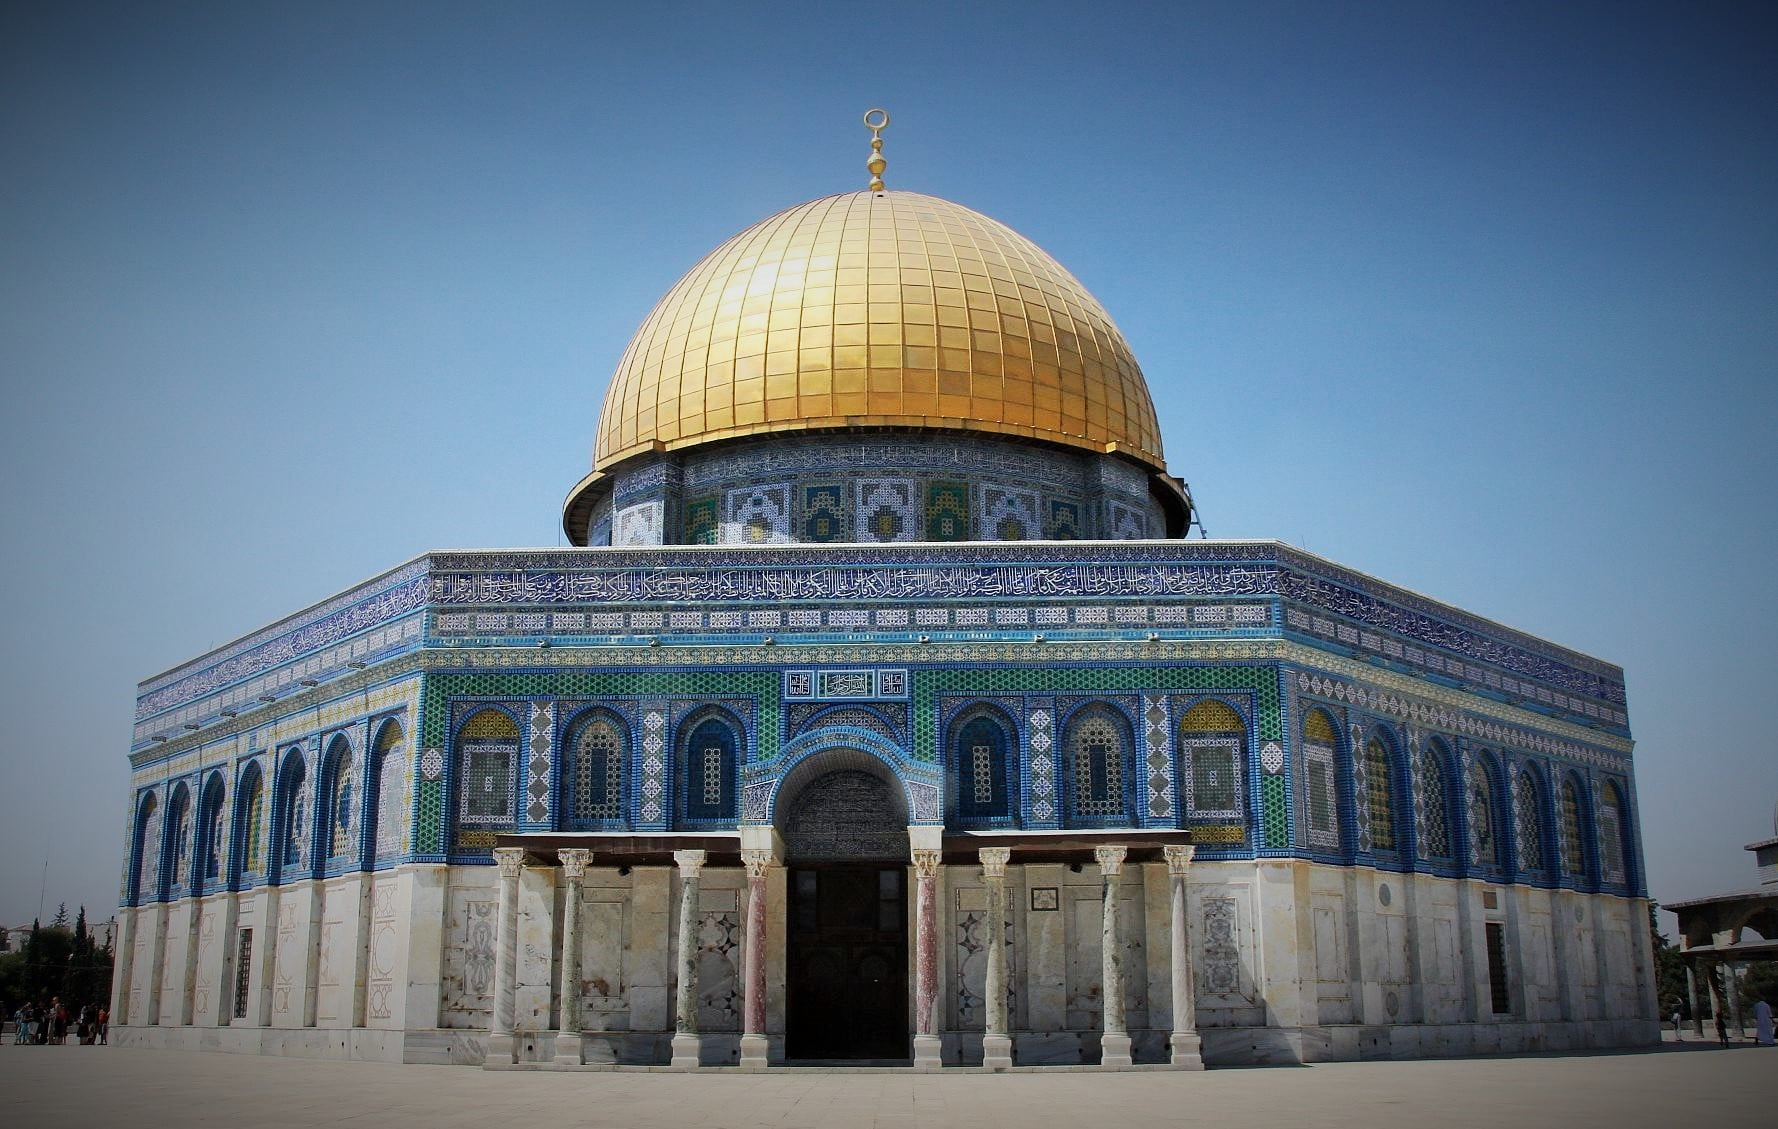 temple-mount-dome-of-the-rock-20150502033558-5544461e71a24.jpg